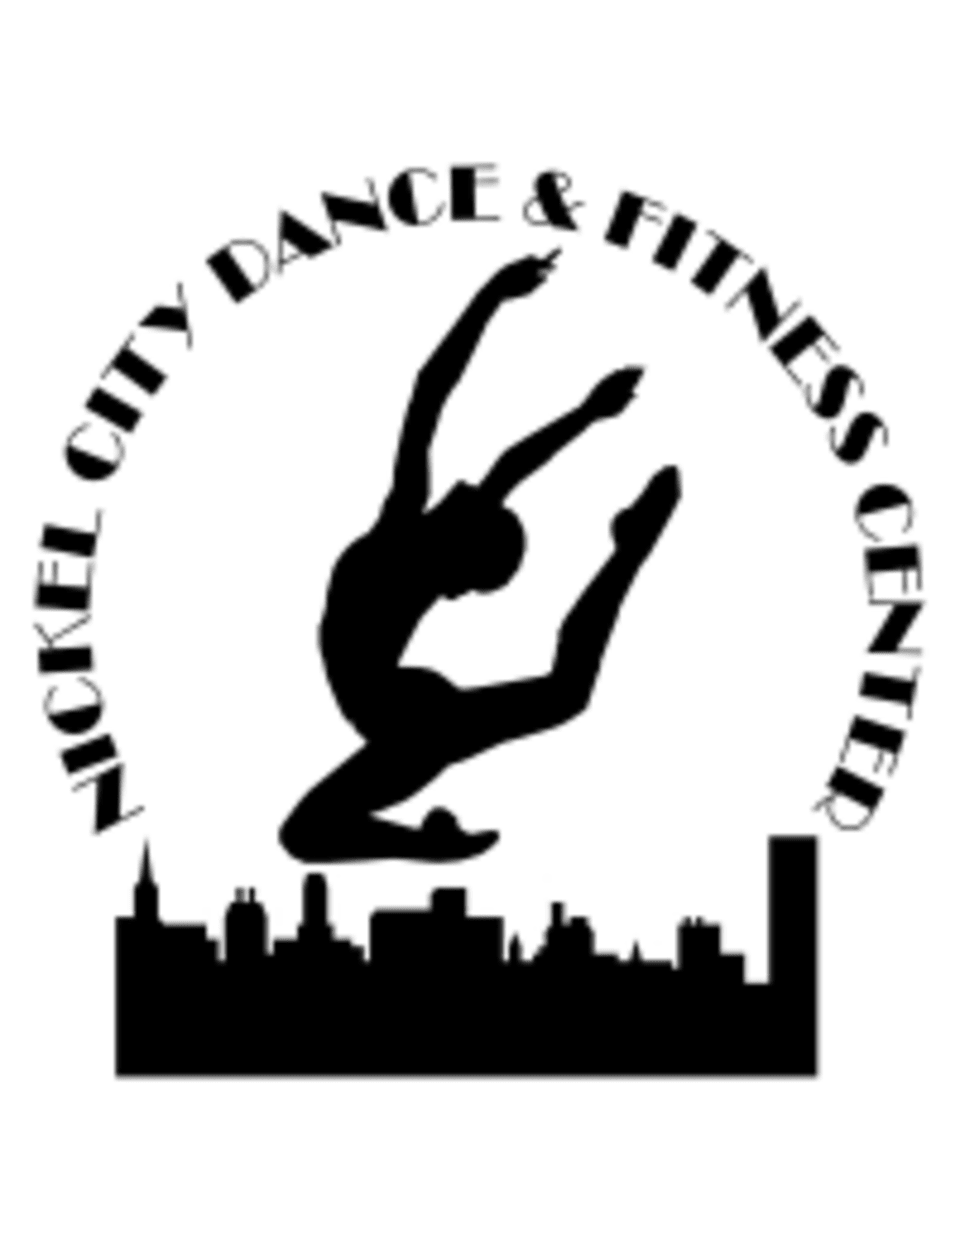 Nickel City Dance and Fitness Center logo